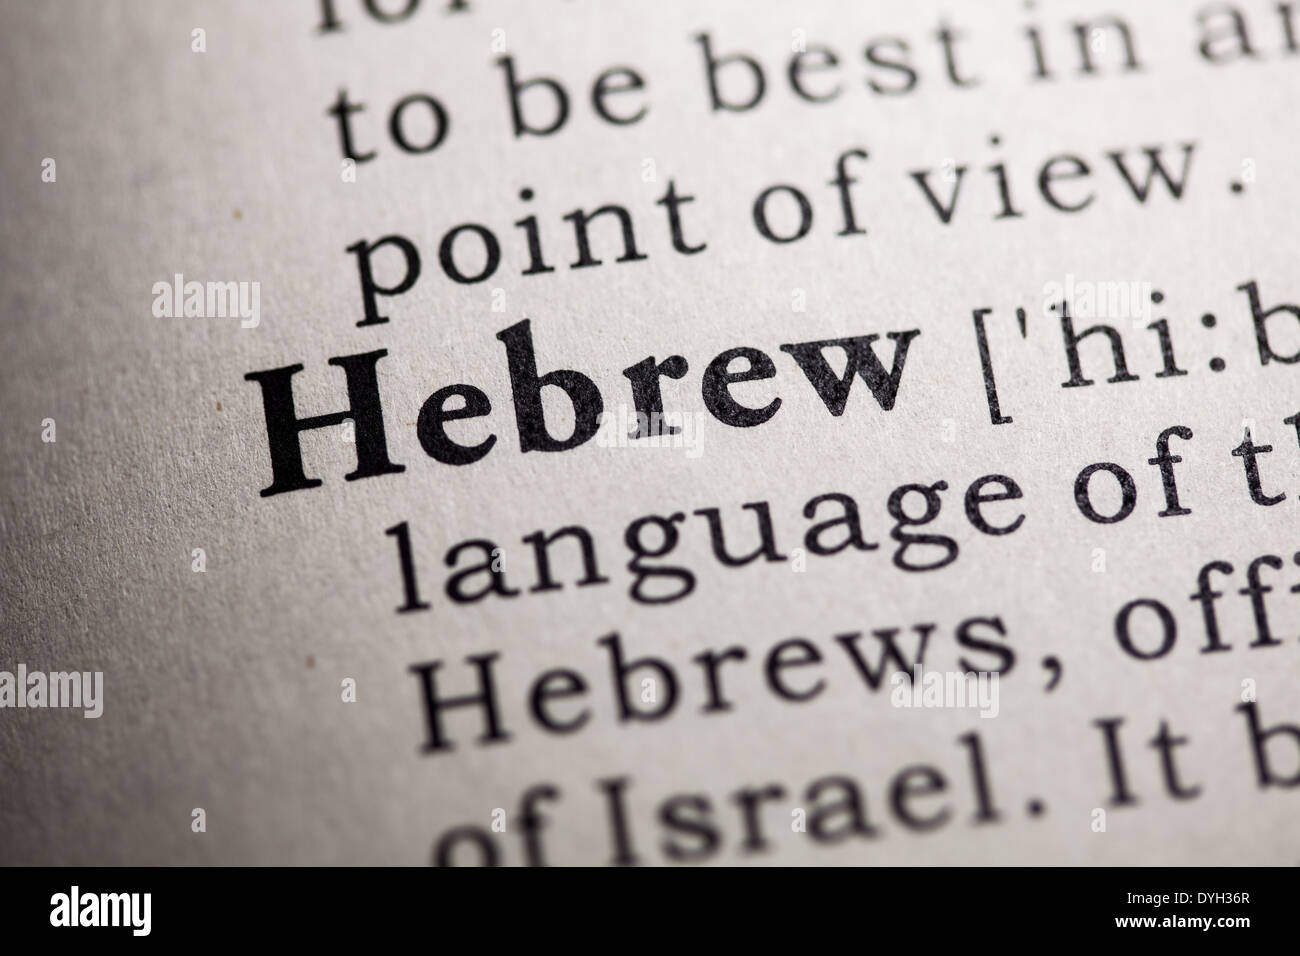 Fake Dictionary, Dictionary definition of the word Hebrew. - Stock Image